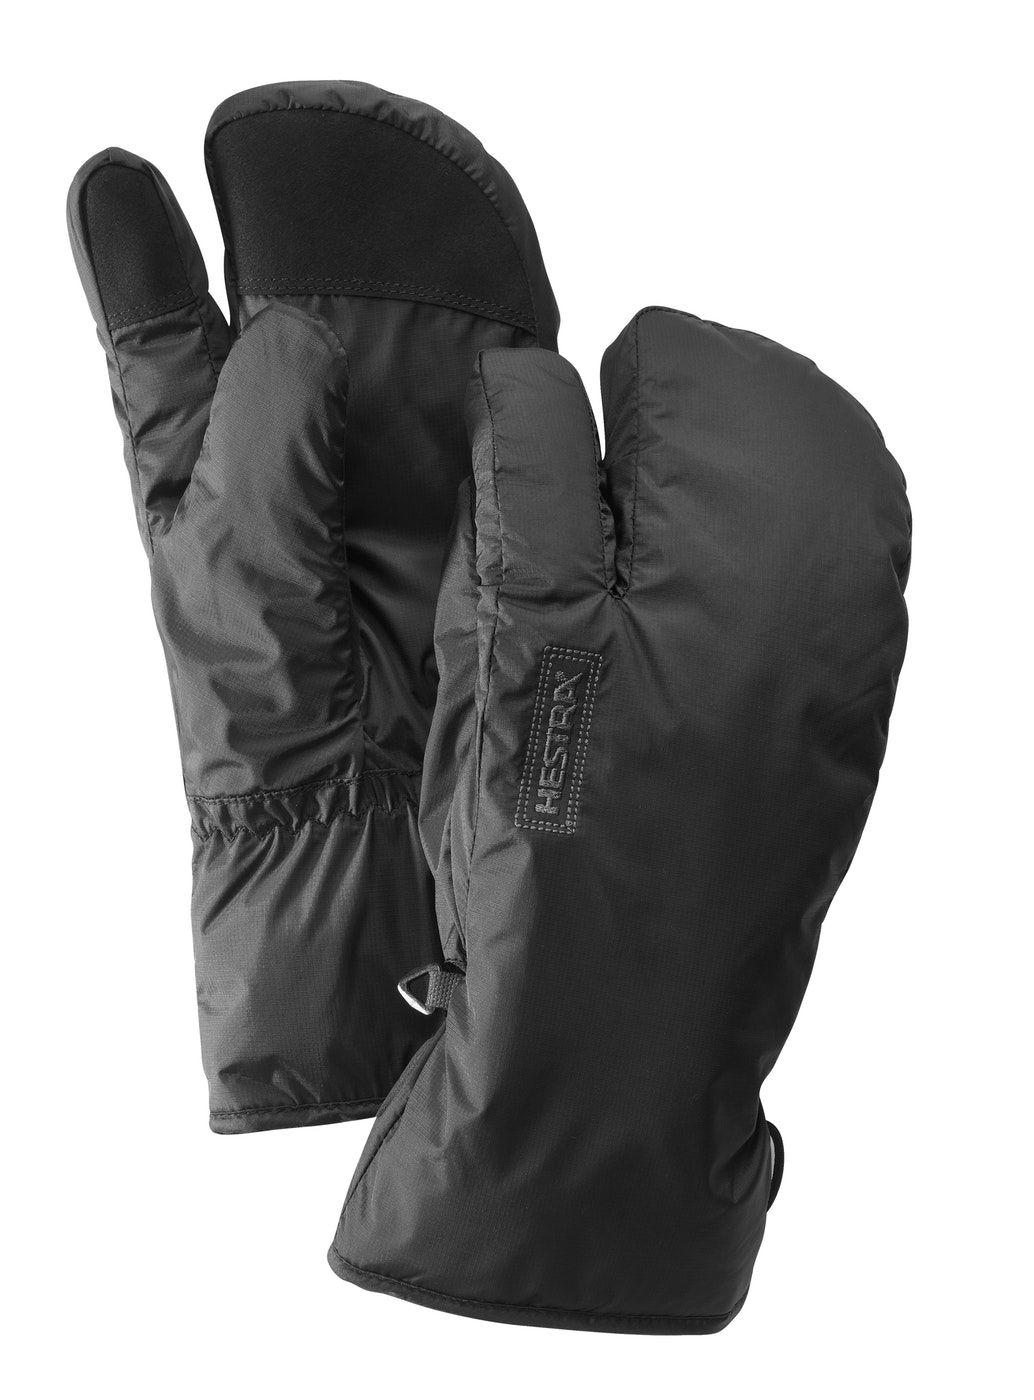 Product image for 34002 Army Leather Expedition Liner